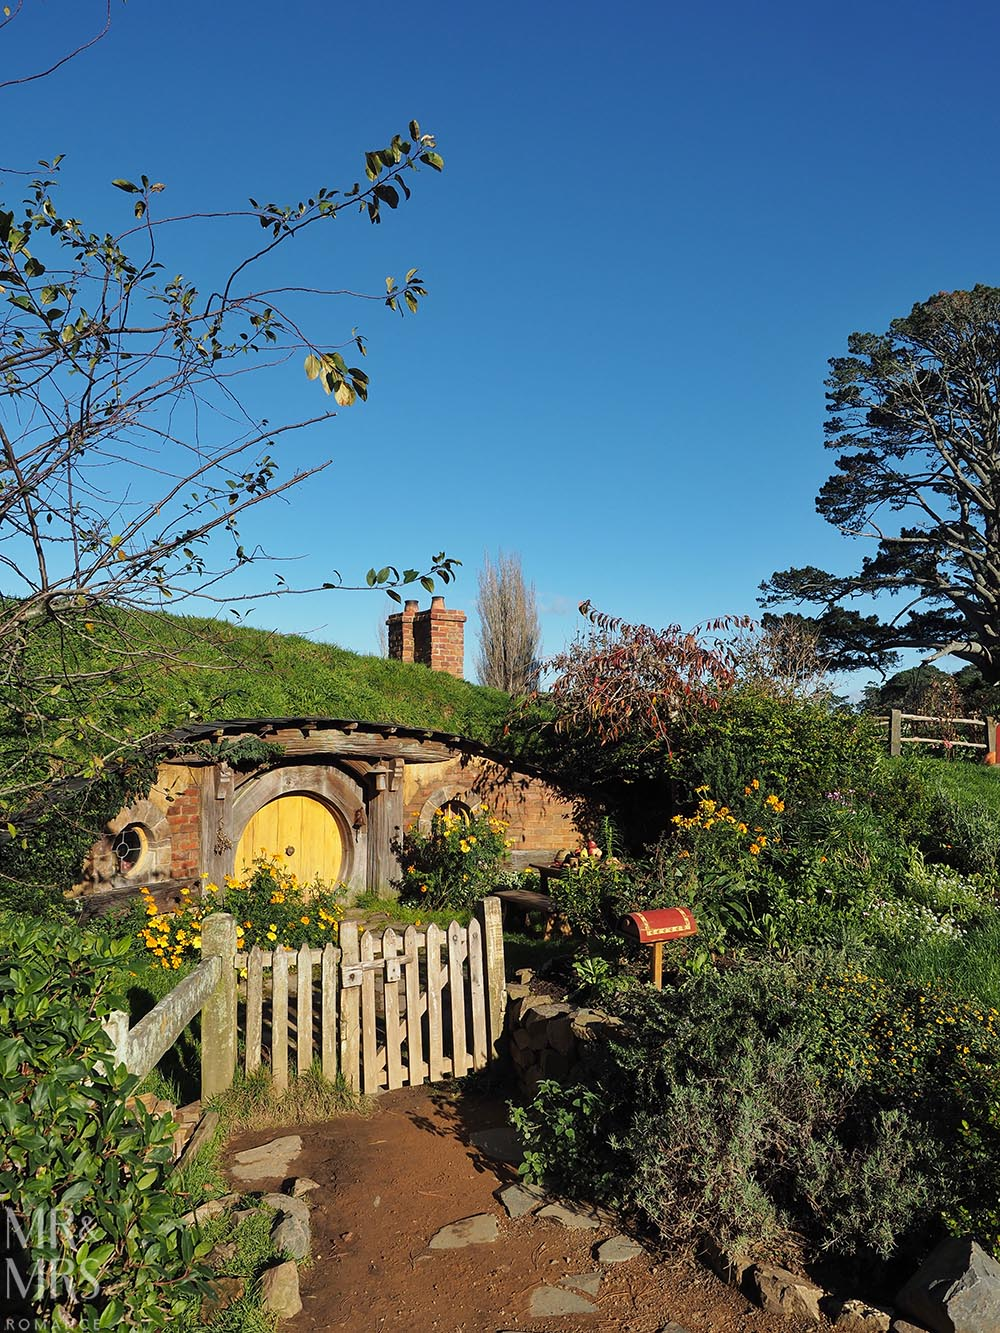 Hobbiton Movie Set, Waikato, New Zealand - hobbit hole